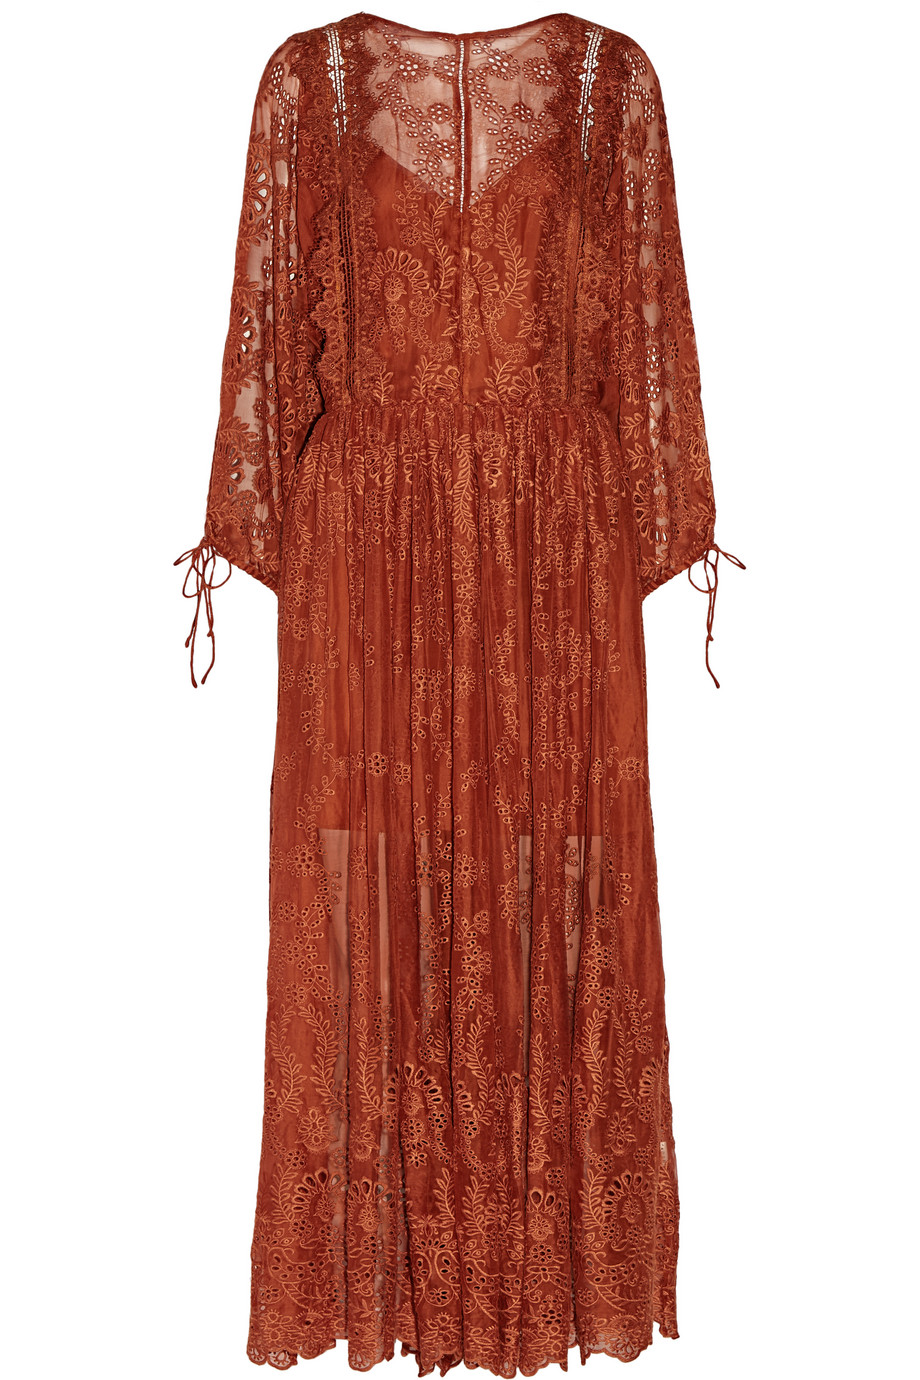 Zimmermann Alchemy Broderie Anglaise Silk-Georgette Dress, Orange, Women's, Size: 2